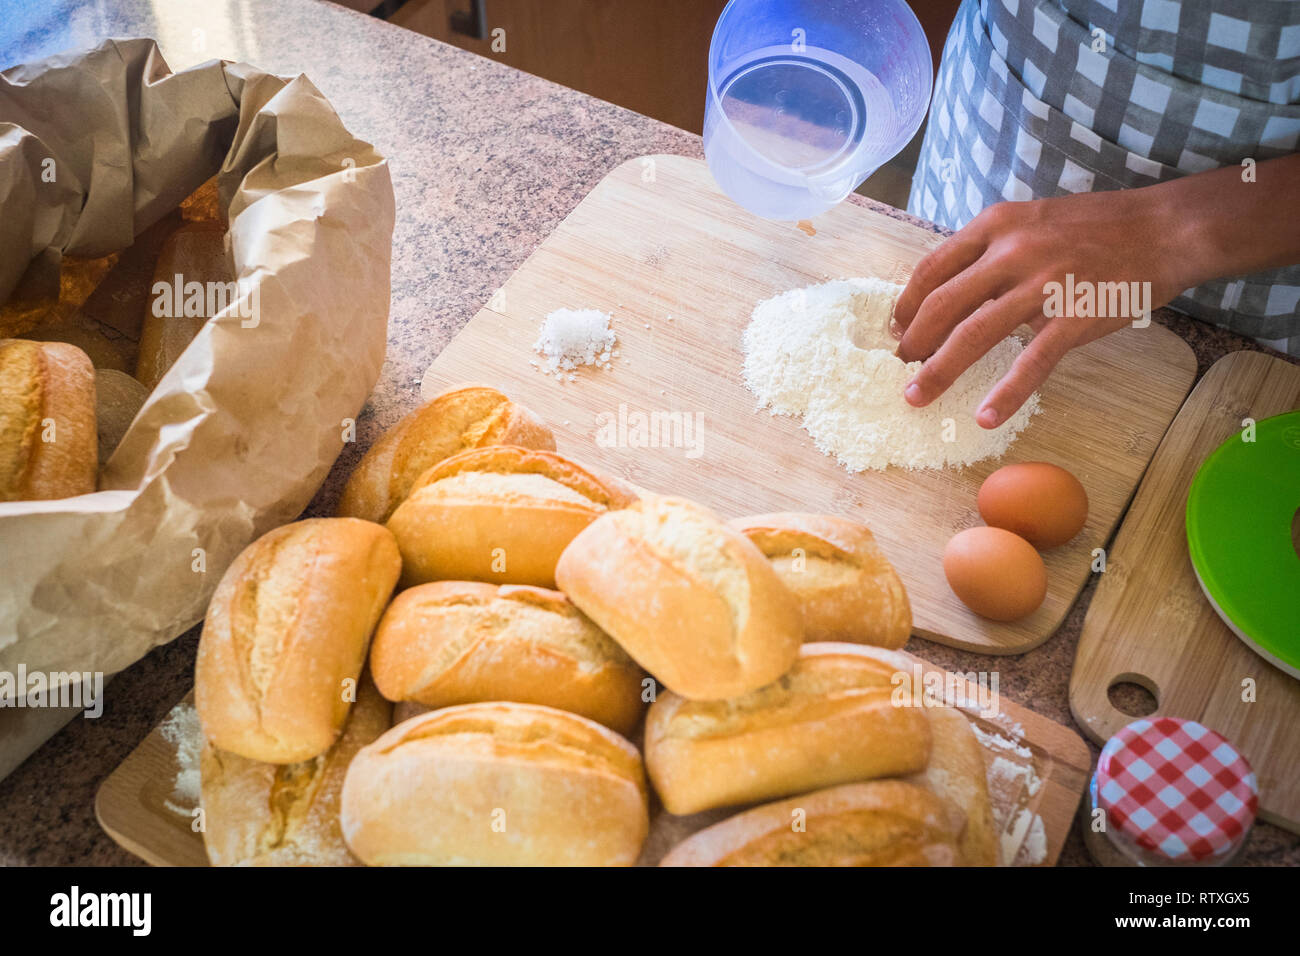 Bakery production with old handmade system - eggs and farina to make bread at home or in the store - healthy food - business concept - top above view  - Stock Image